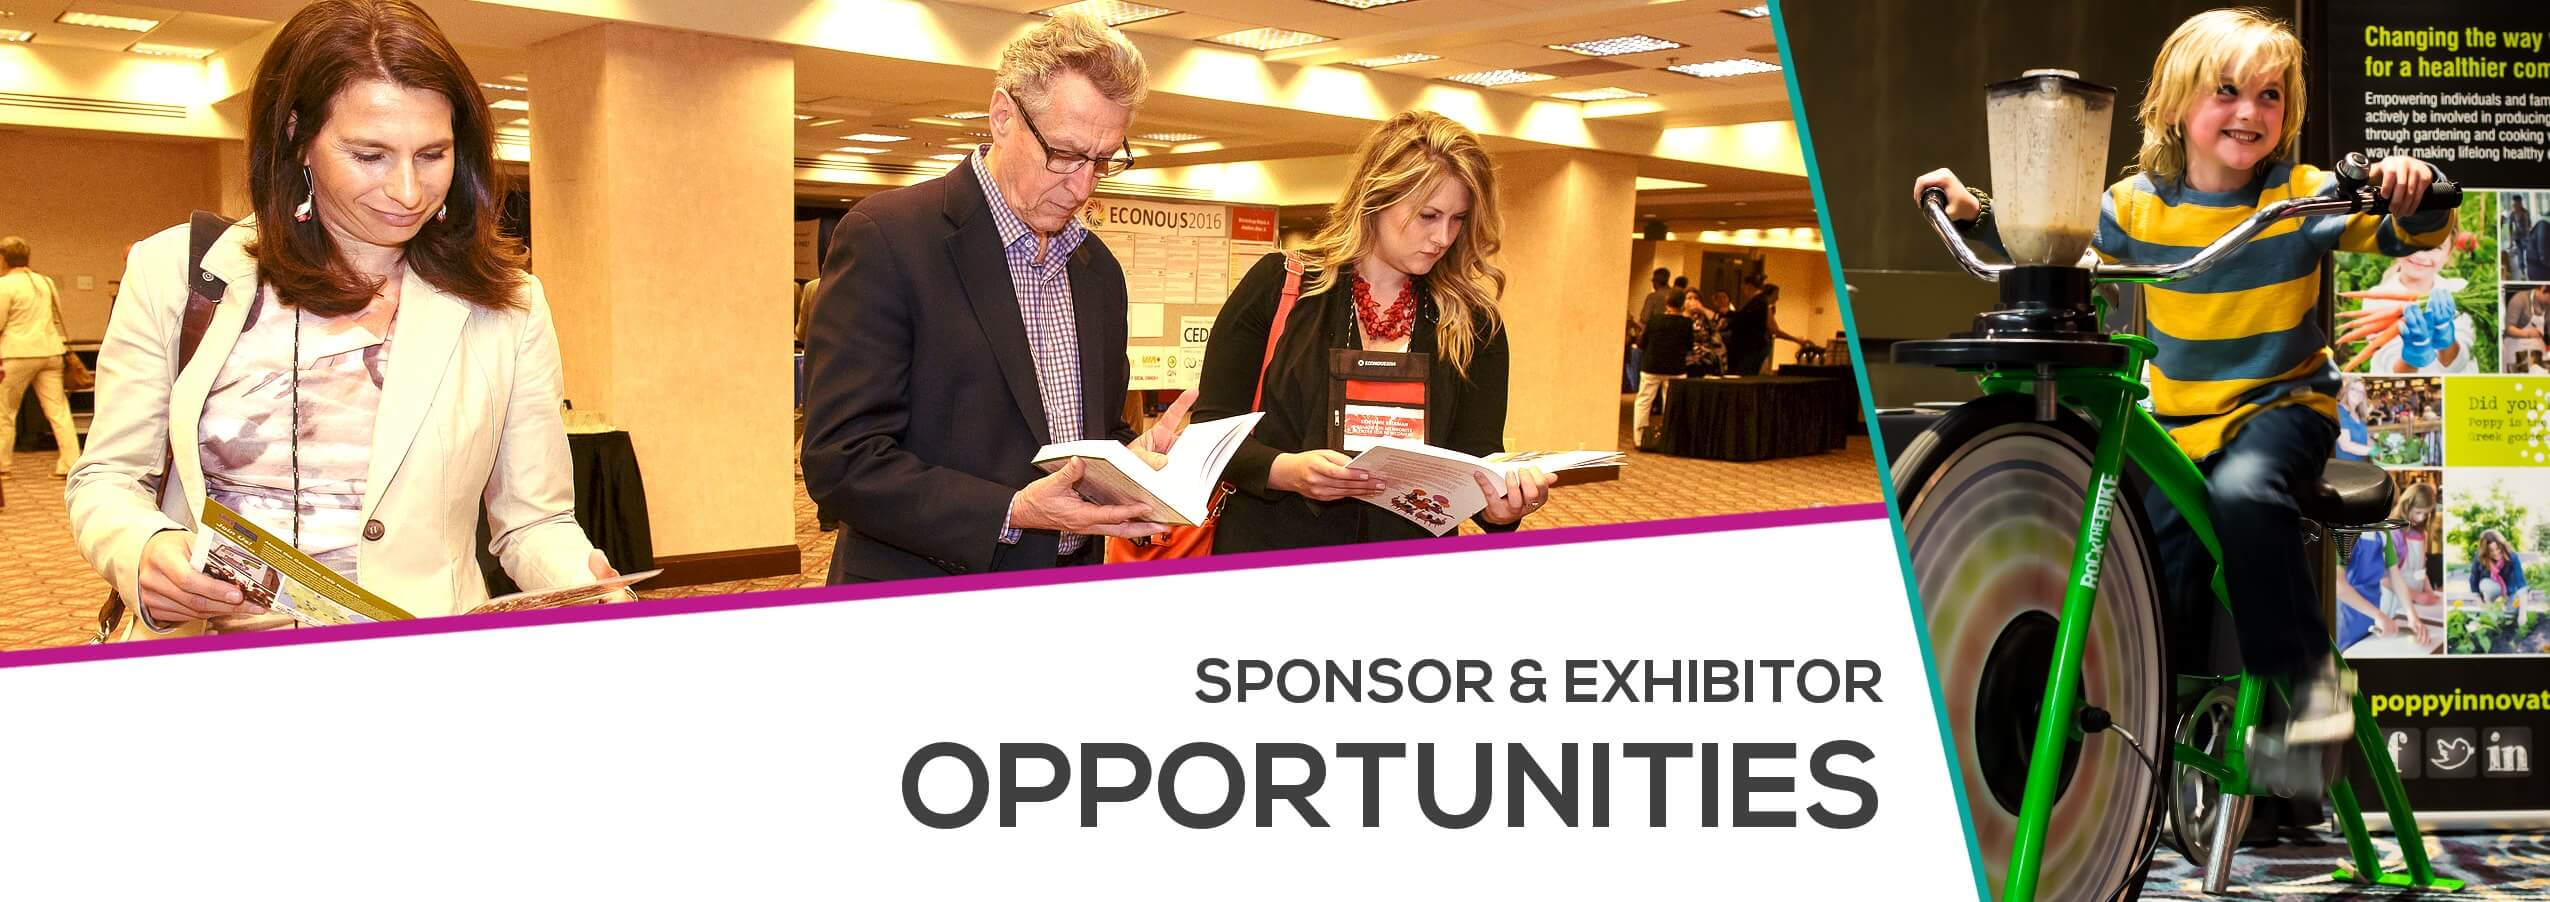 EconoUs2017: Sponsor and Exhibitor Opportunities